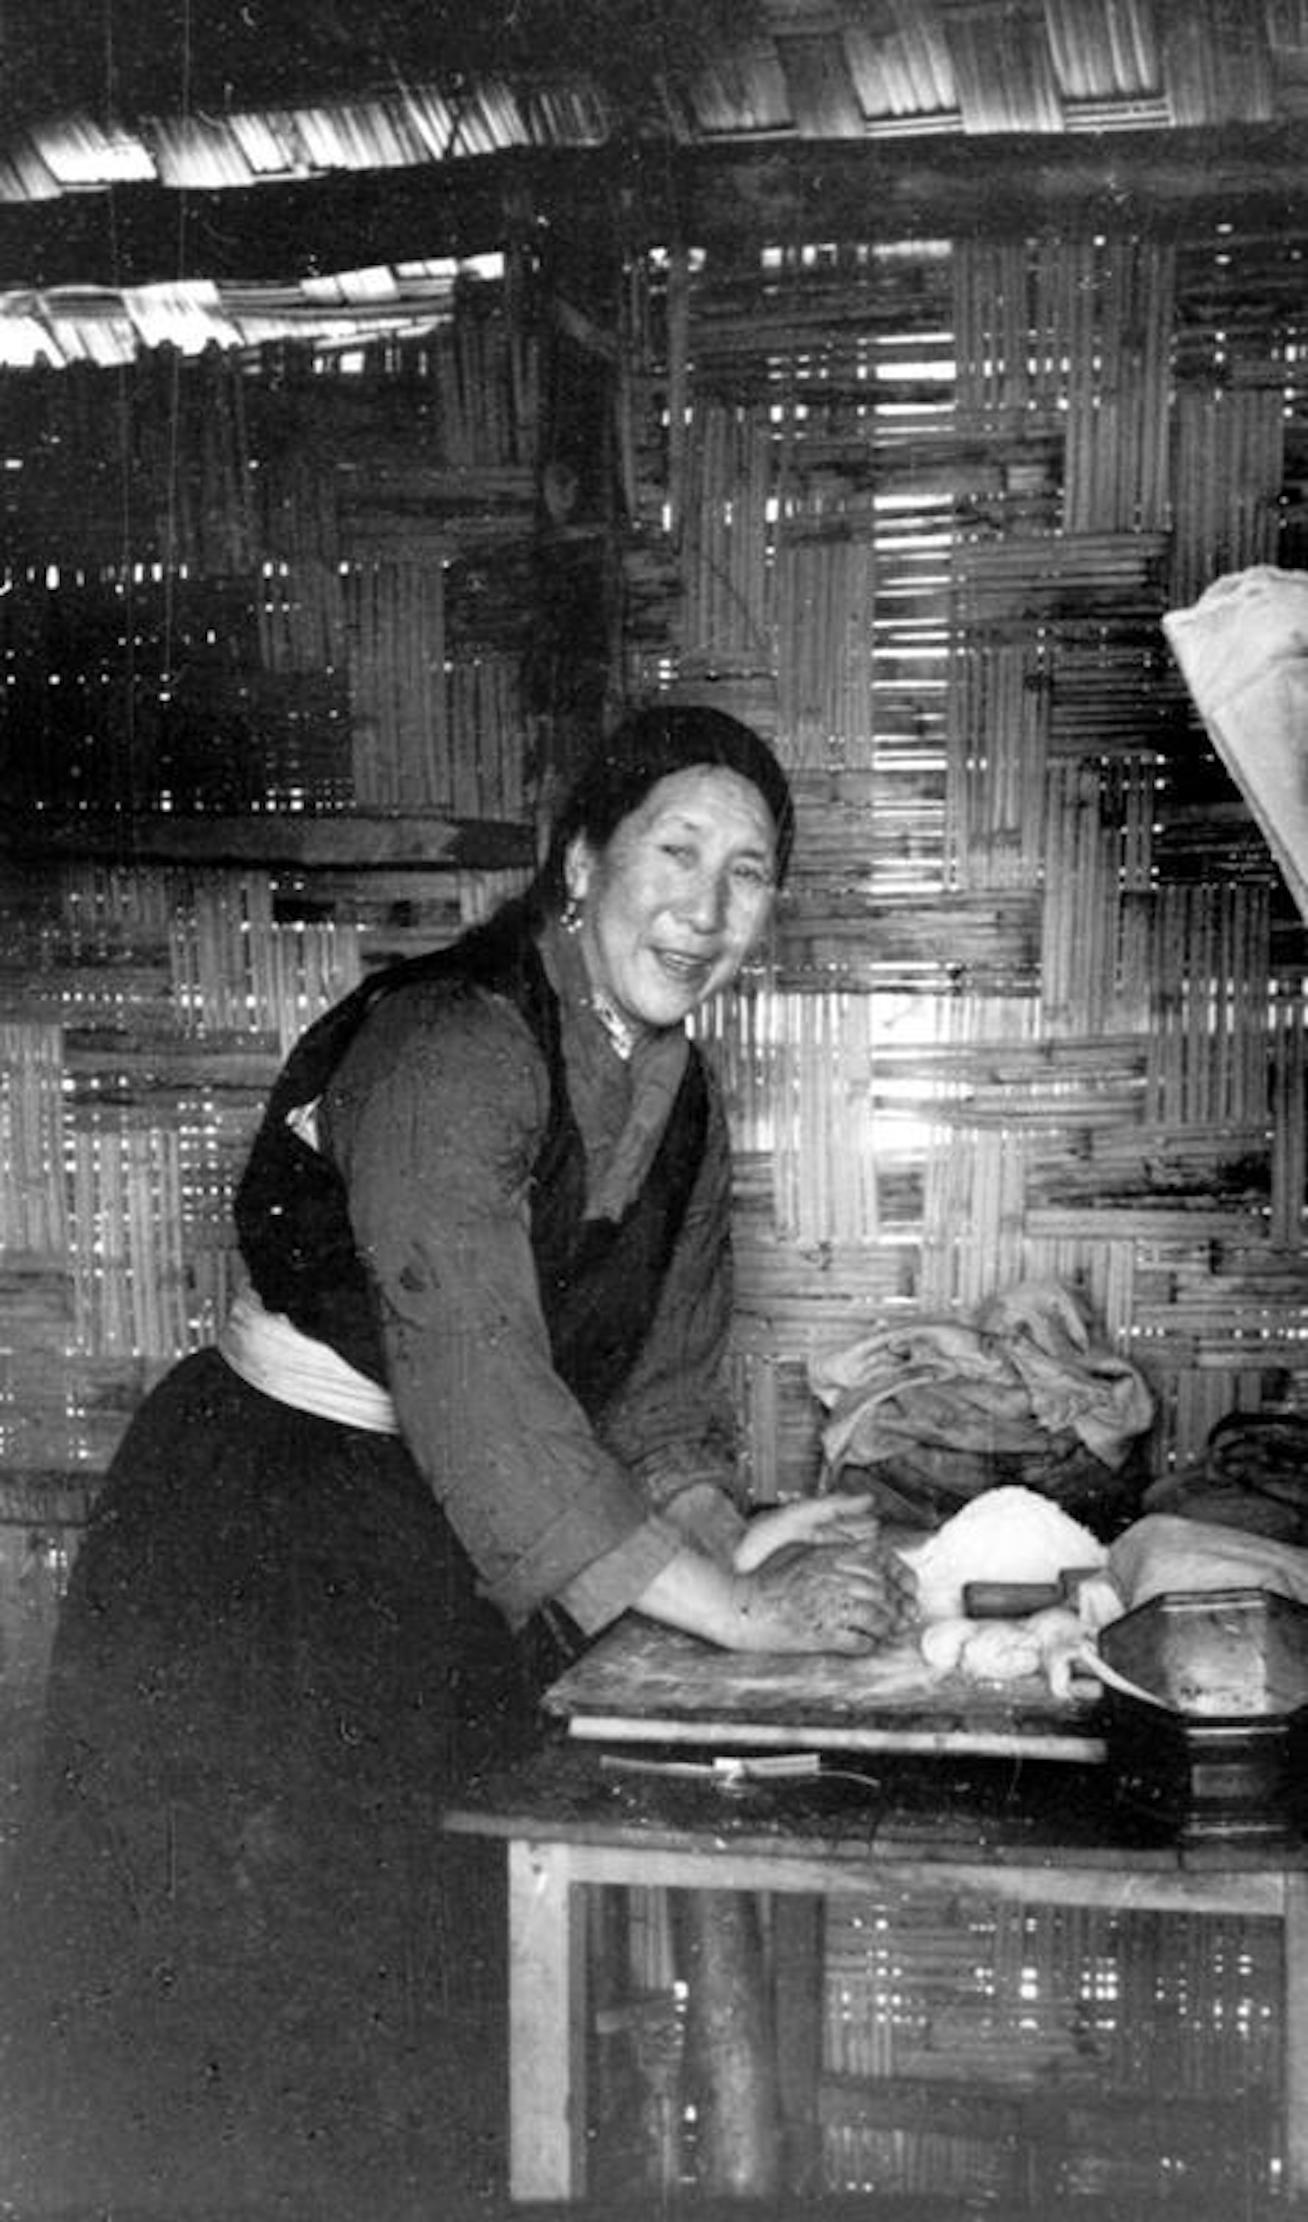 shadow tibet jamyang norbu blog archive untangling a mess of shadow tibet jamyang norbu blog archive untangling a mess of petrified noodles